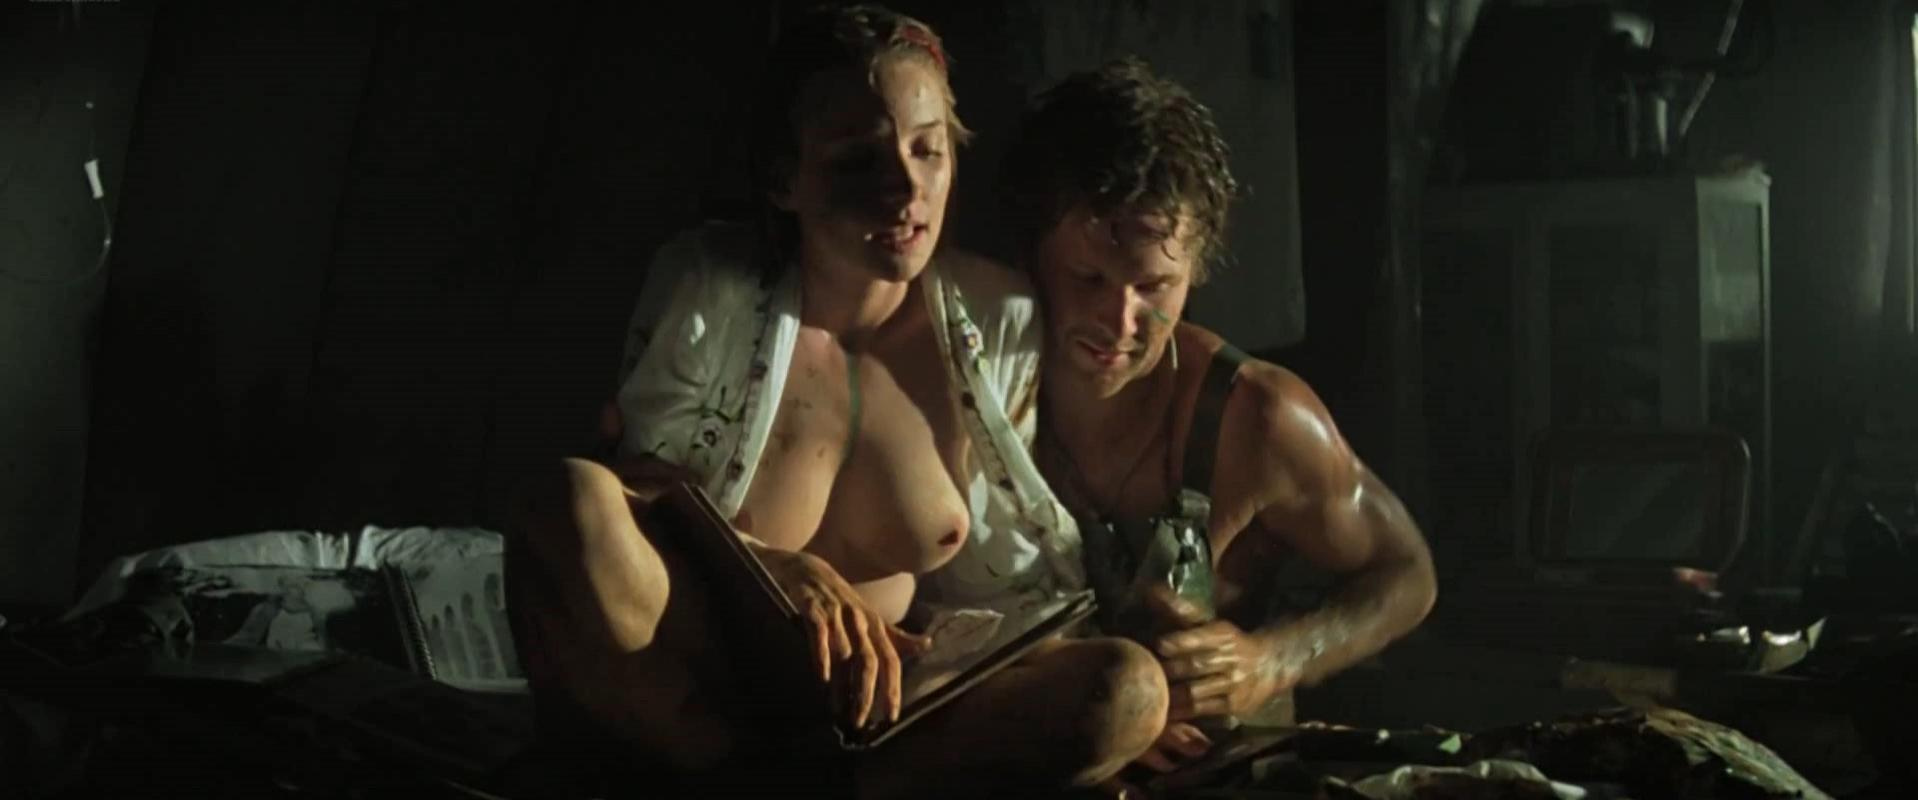 Cynthia Wood nude, Colleen Camp nude - Apocalypse Now (1979)